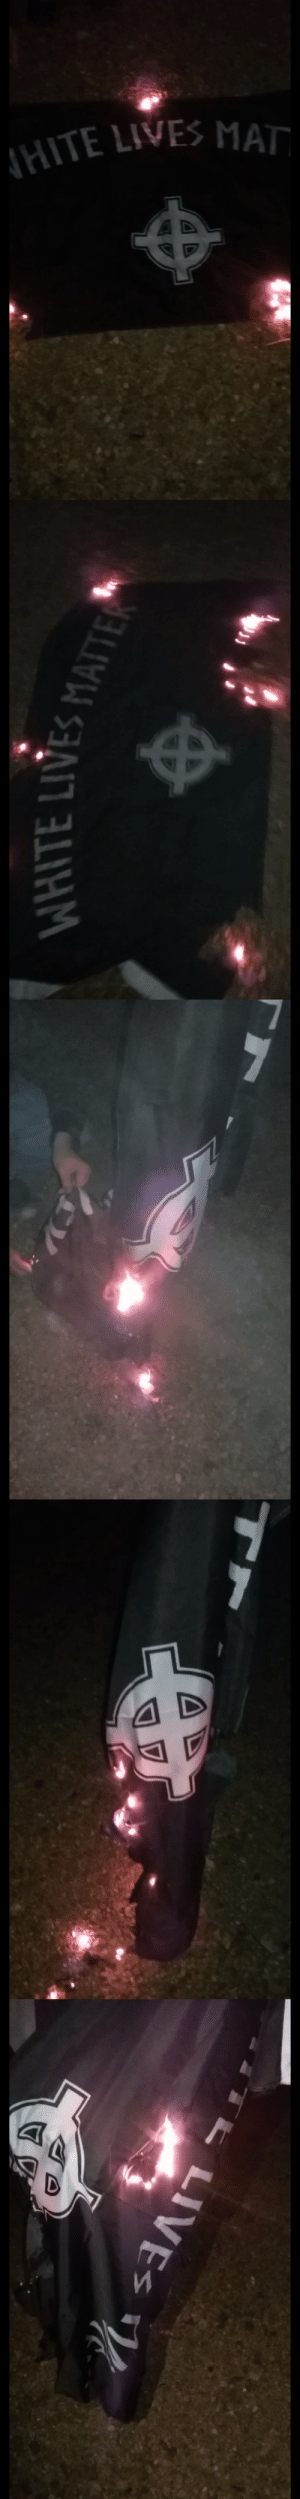 Protest, Tumblr, and Blog: ITE LIVES MAT   WHITE LIVES the-anarcho-raver:Tennessee antifa burning a white supremacist flag after the amren protest.